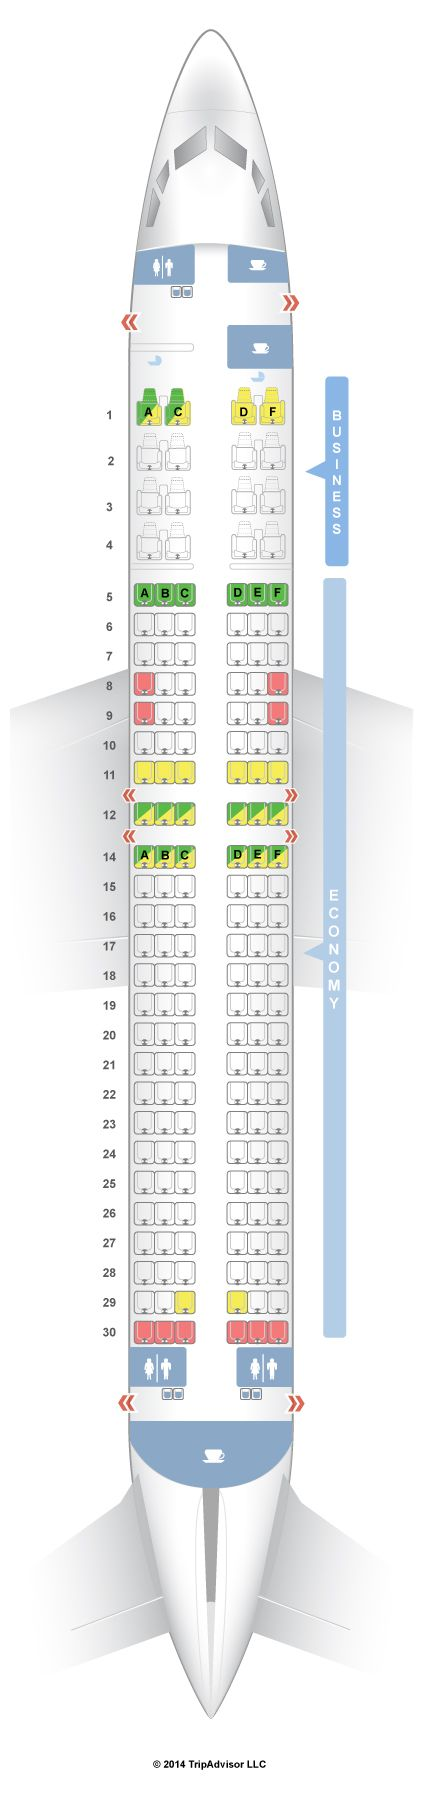 25 Best Ideas About 737 800 Seating On Pinterest Boeing